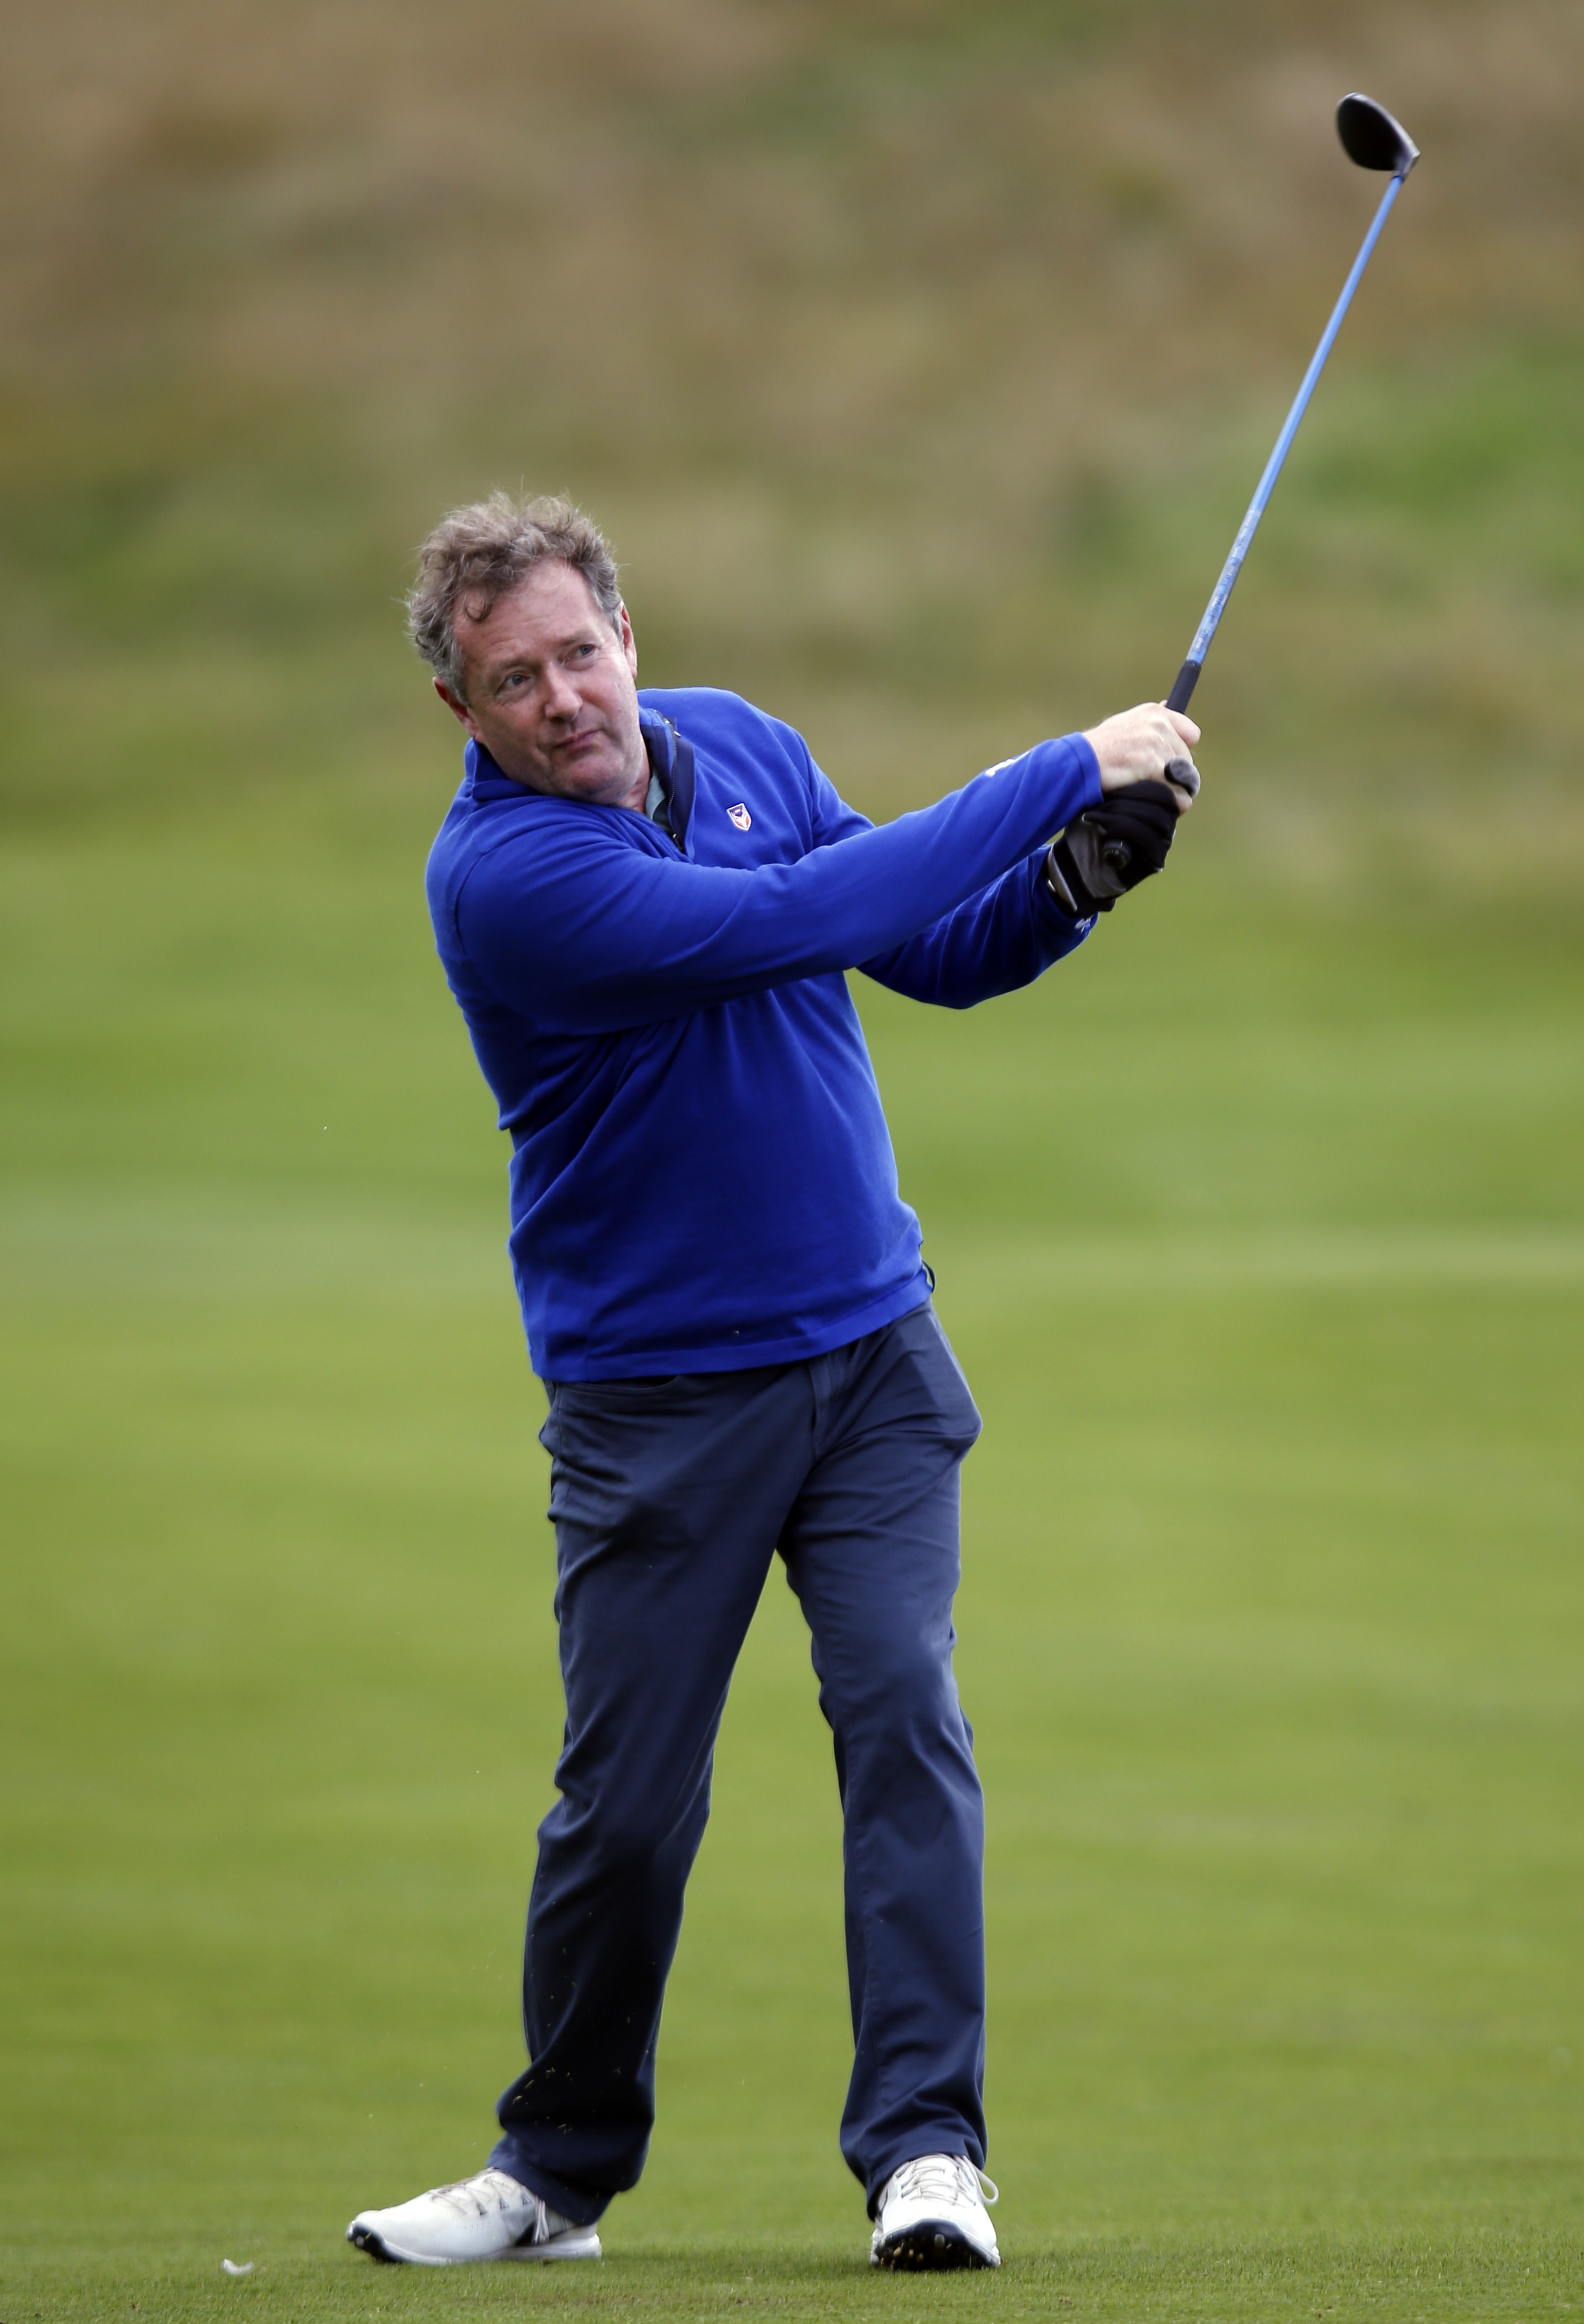 Britain Golf - British Masters - The Grove, Hertfordshire - 12/10/16 Piers Morgan tees off at the 12th hole during the Pro-Am Action Images via Reuters / Paul Childs Livepic EDITORIAL USE ONLY.